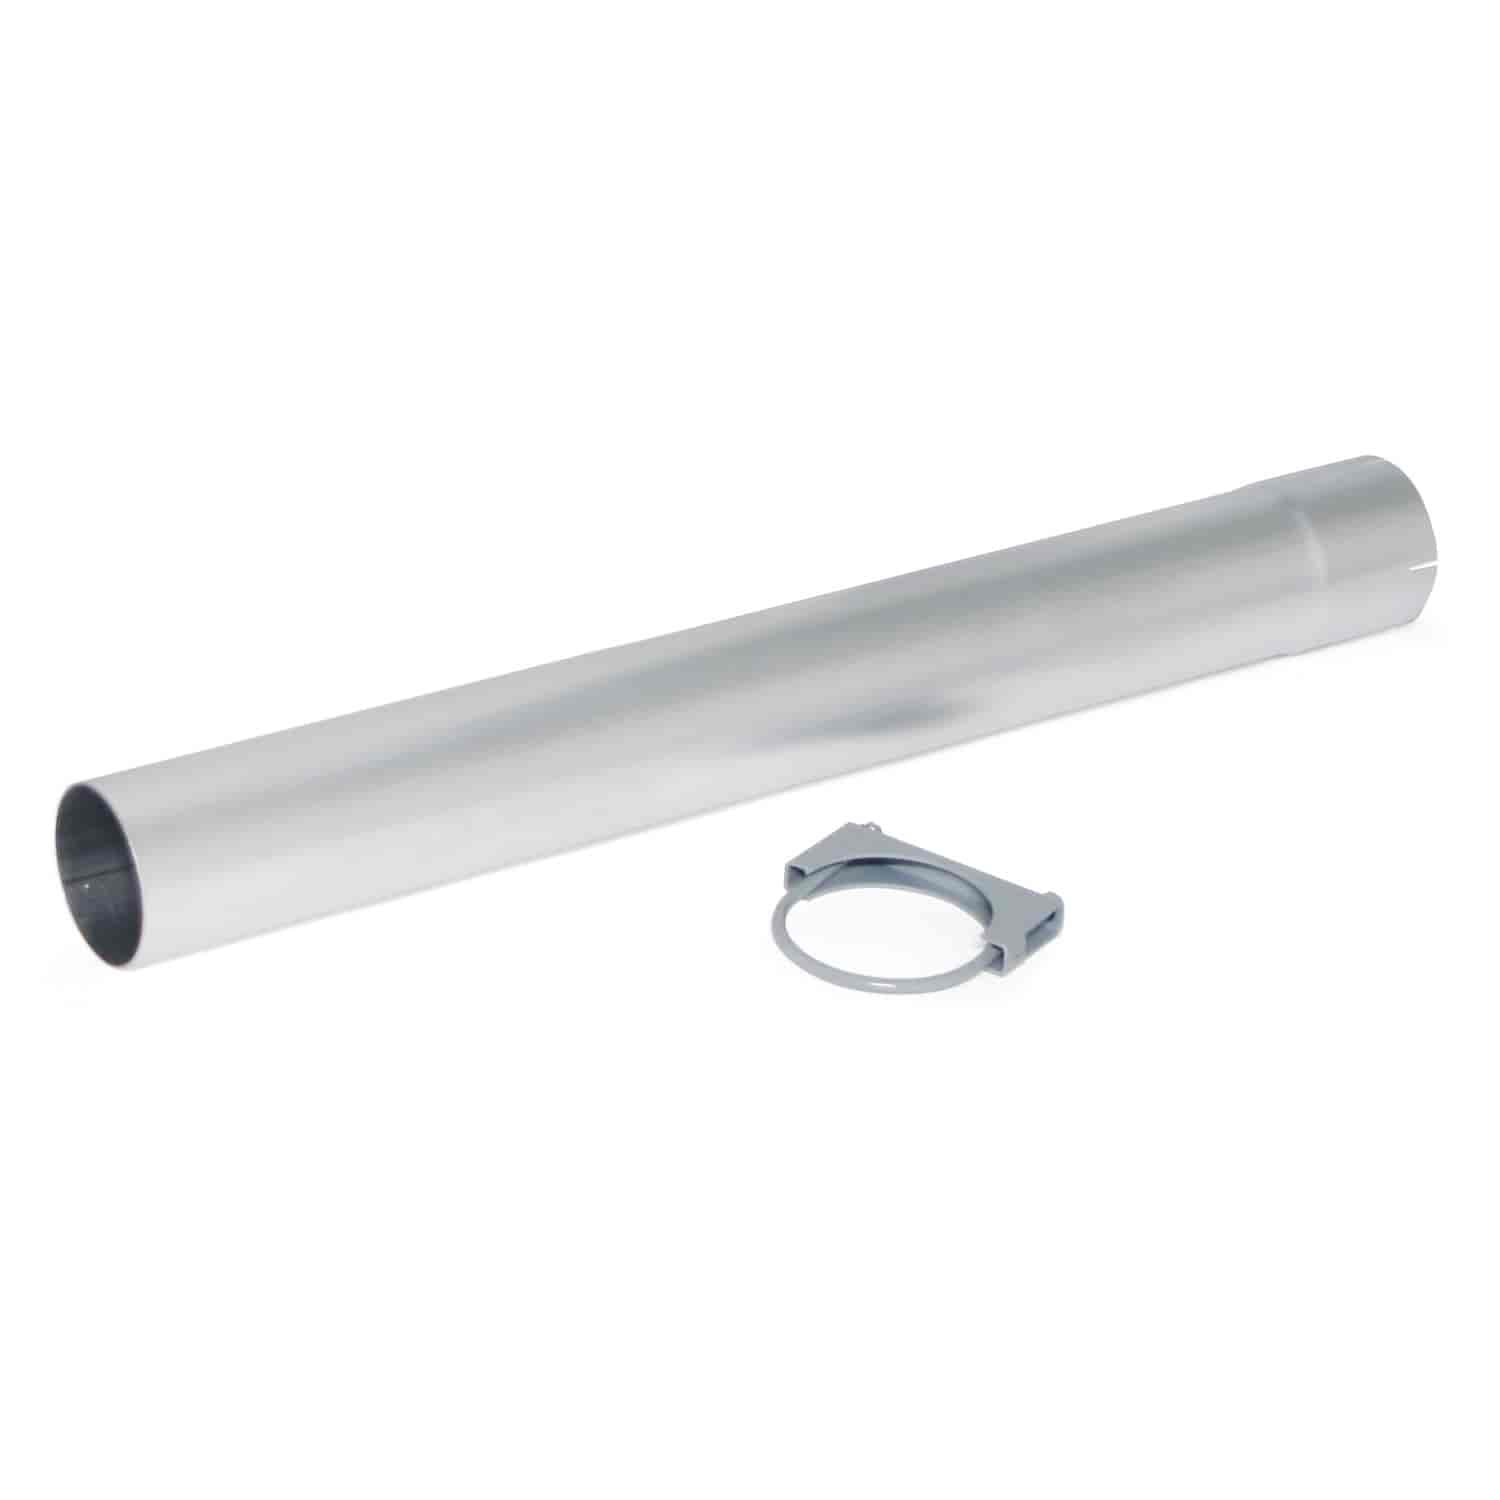 Banks 49096 - Banks Exhaust Extension Kits